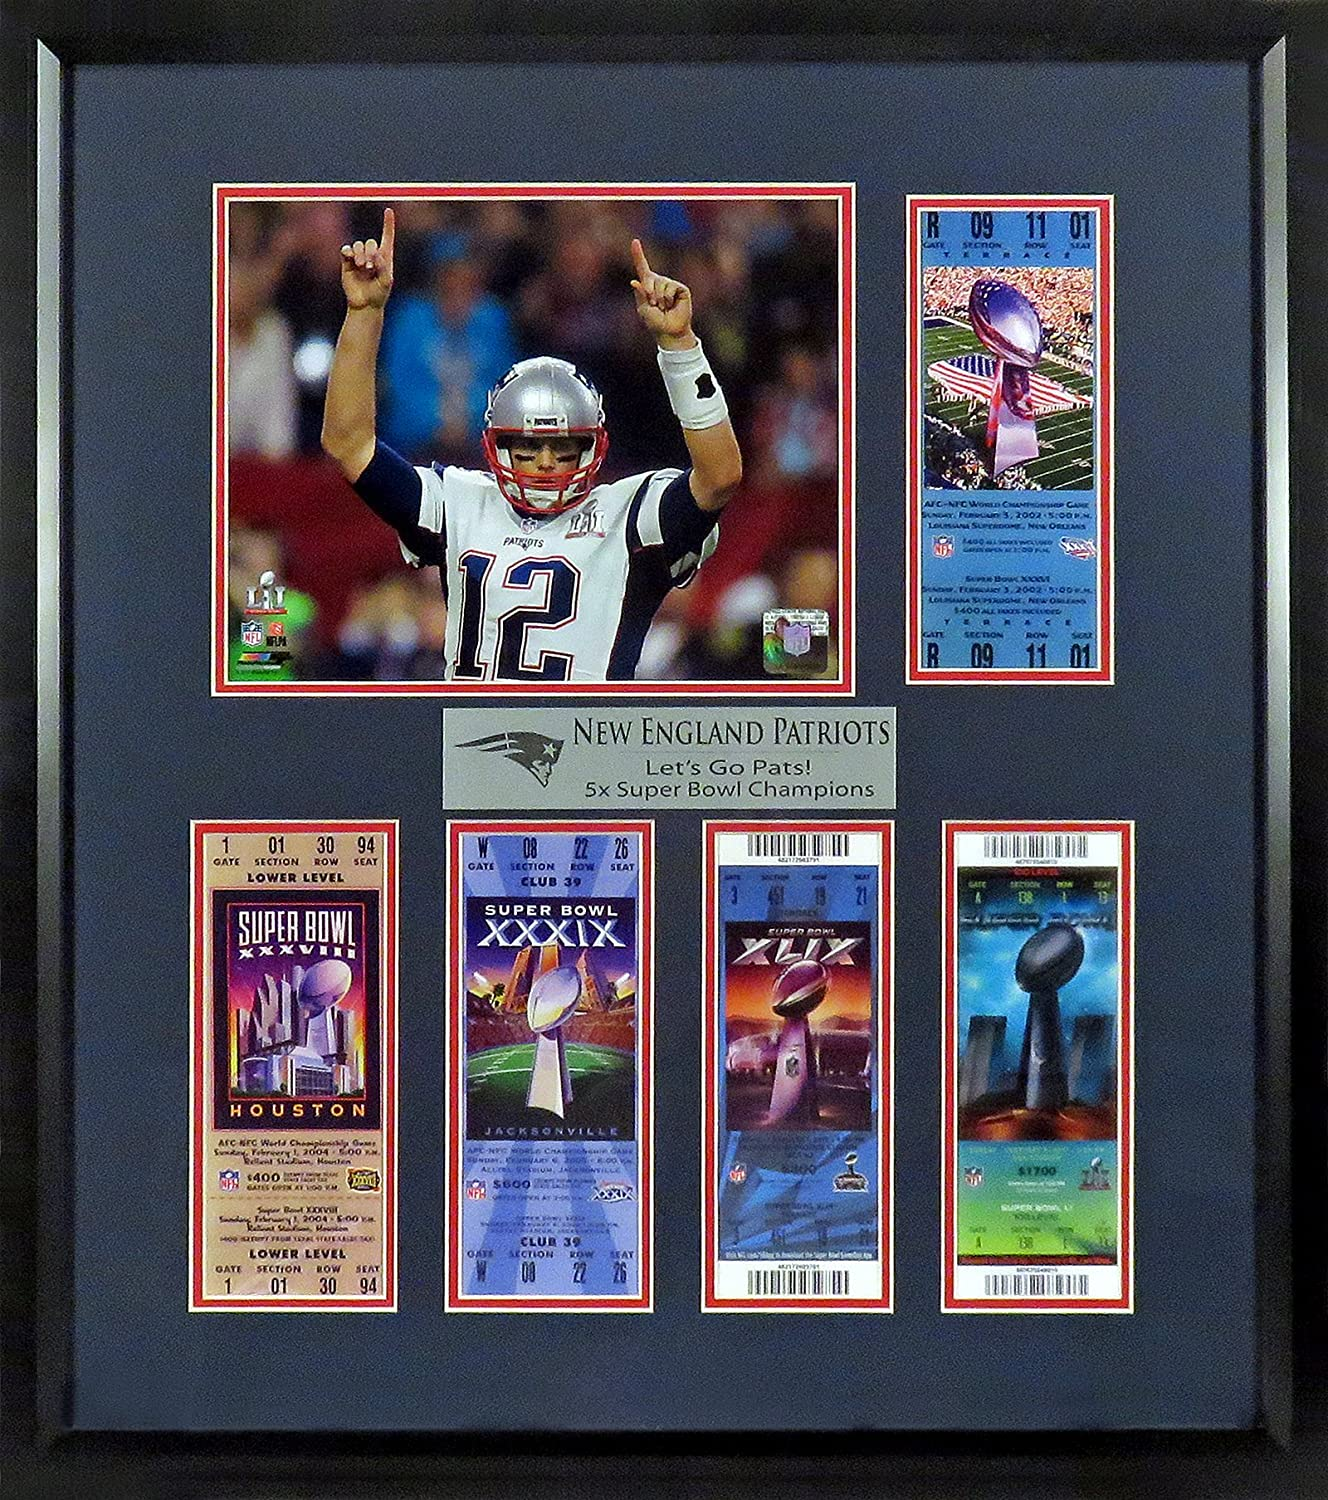 New England Patriots 'Let's Go Pats!' Super Bowl Tickets Display (Feat. SB LI Tom Brady) Framed Sports Gallery Authenticated